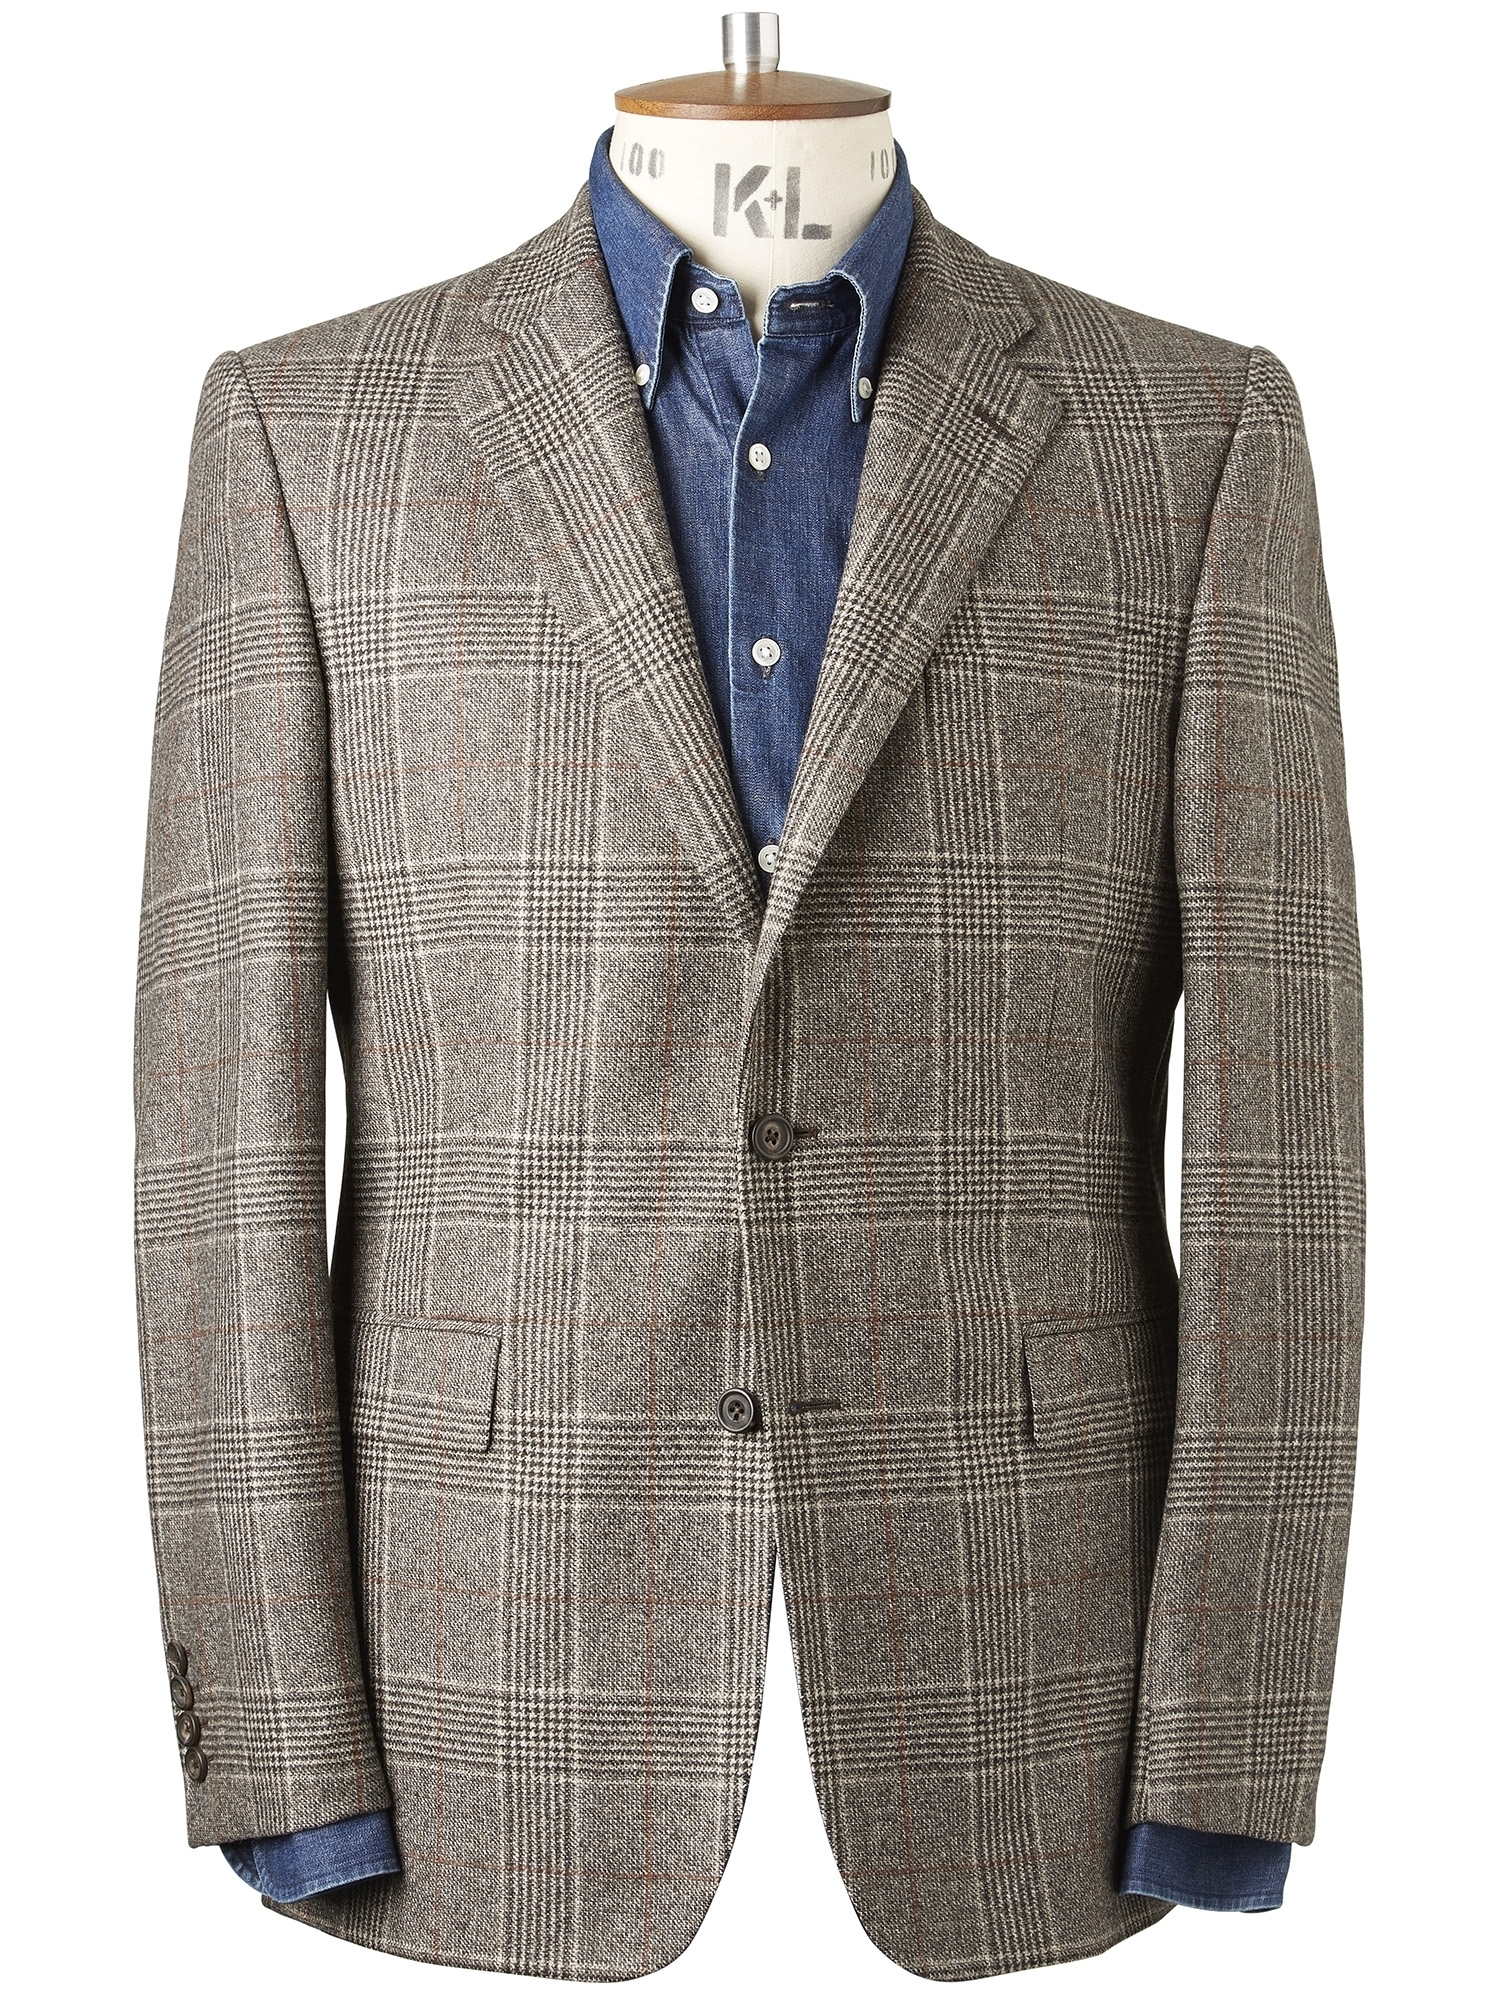 CHESTER BARRIE Flannel Prince Of Wales Check Elverton Jacket